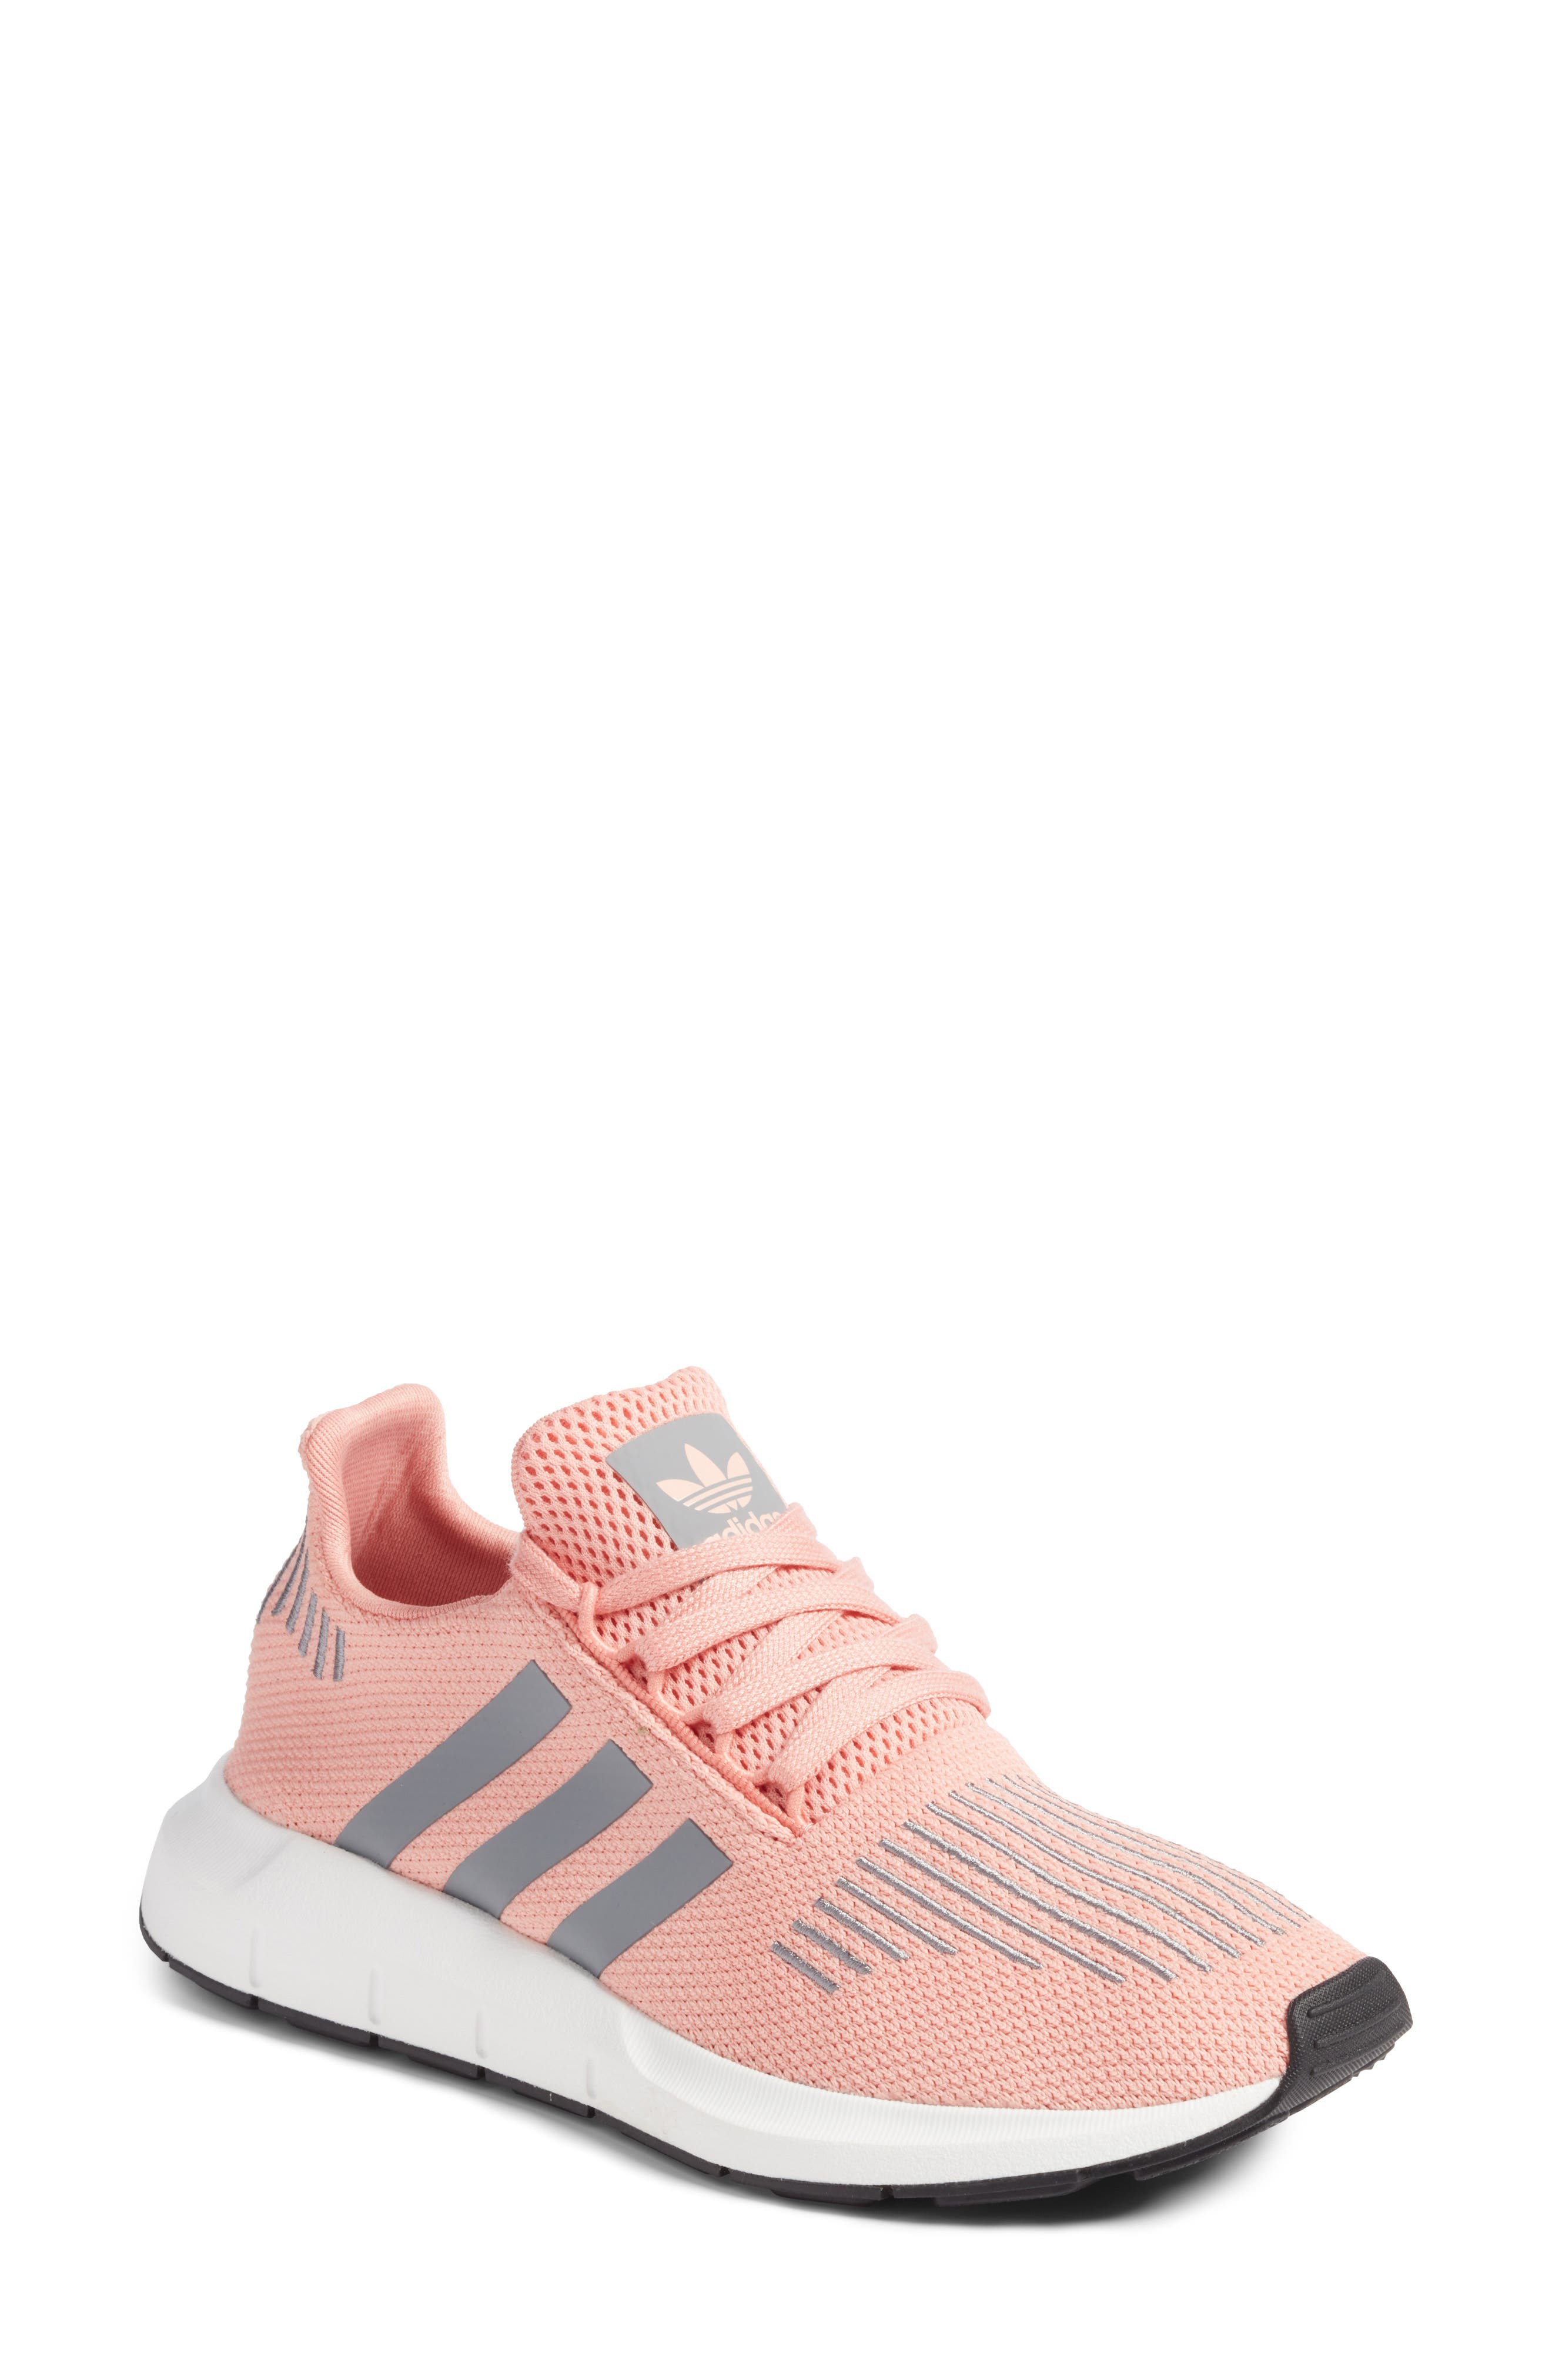 adidas shoes pink and white. adidas swift run sneaker (women) shoes pink and white